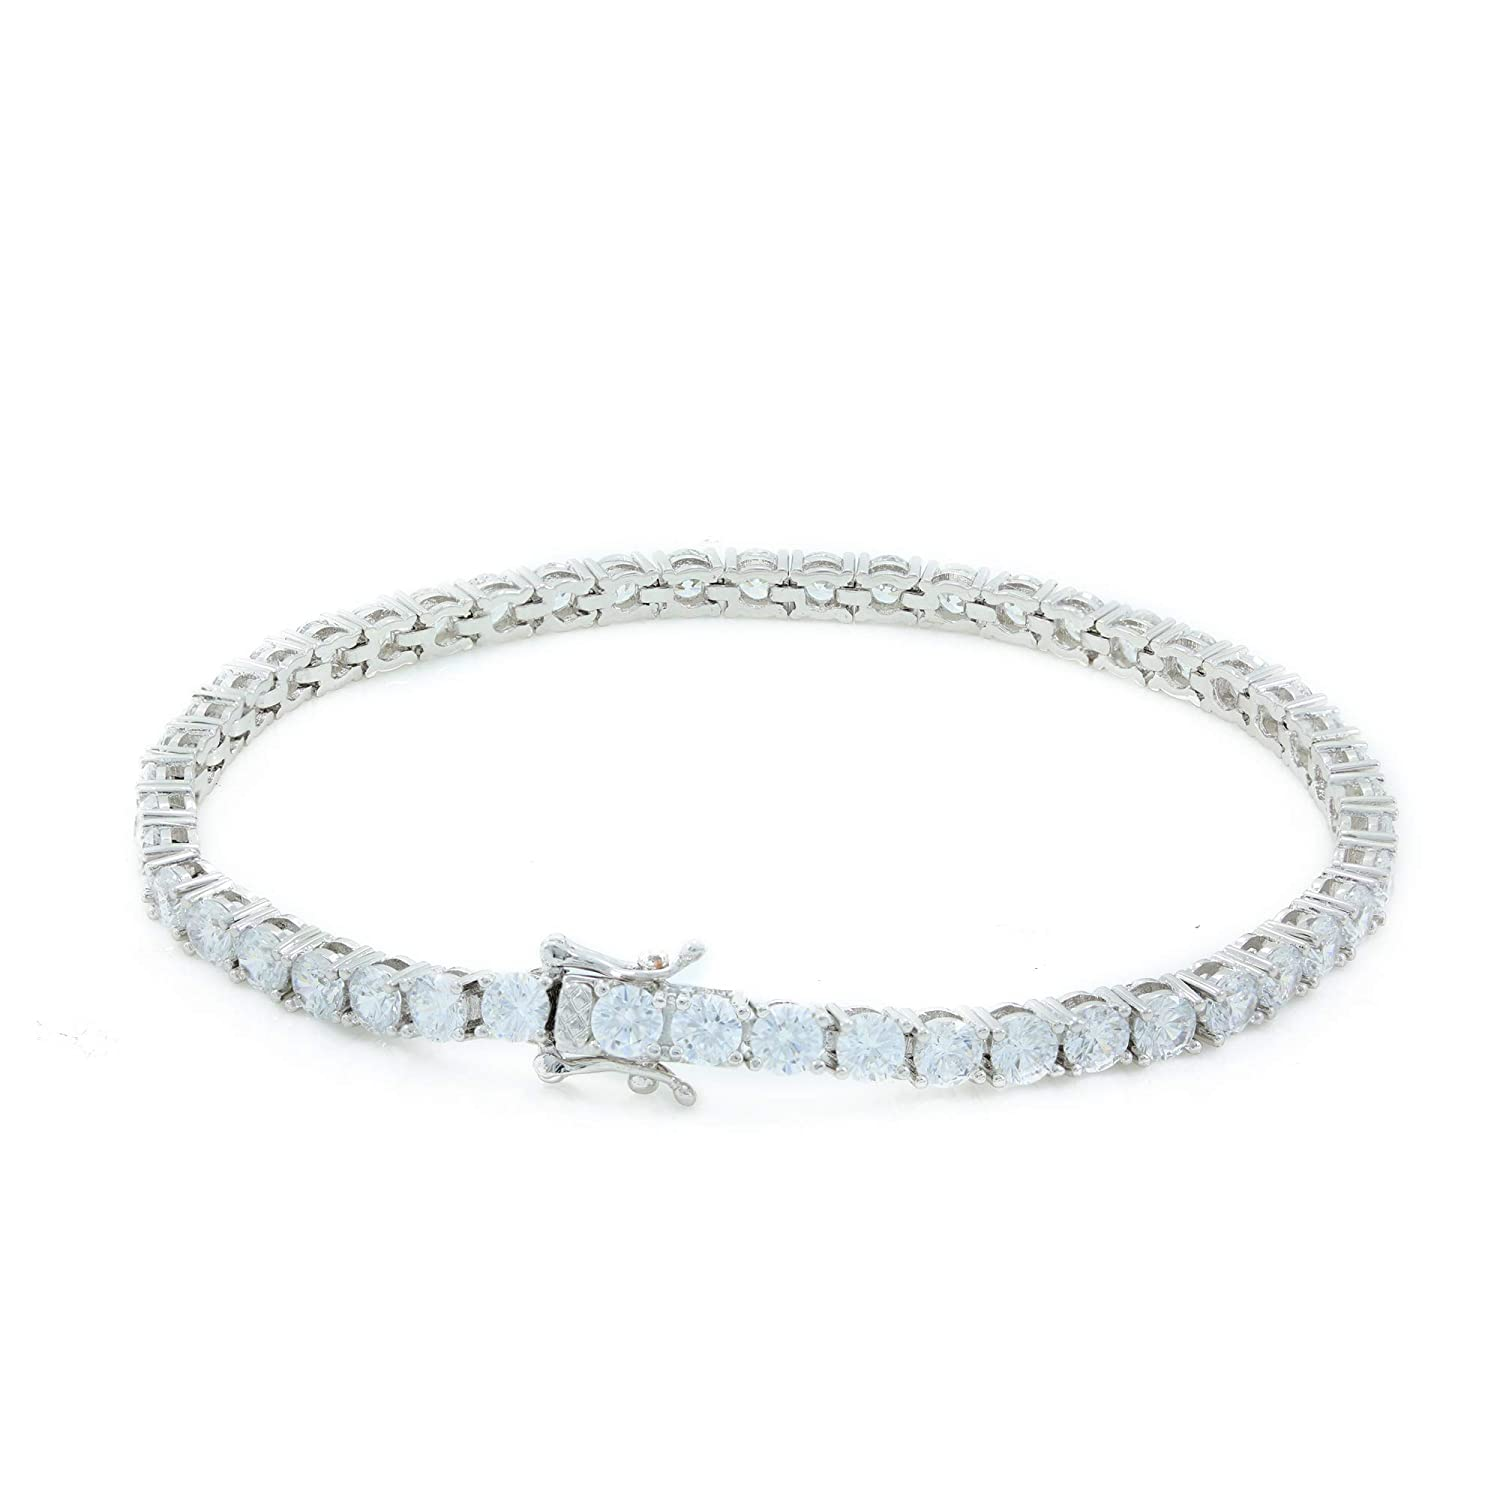 Bling Bling NY Unisex 4mm Real Solid 925 Sterling Silver Tennis Chain CZ One Row Choker Necklace 16-30 Bracelet 6.5-9 Anti-Tarnish